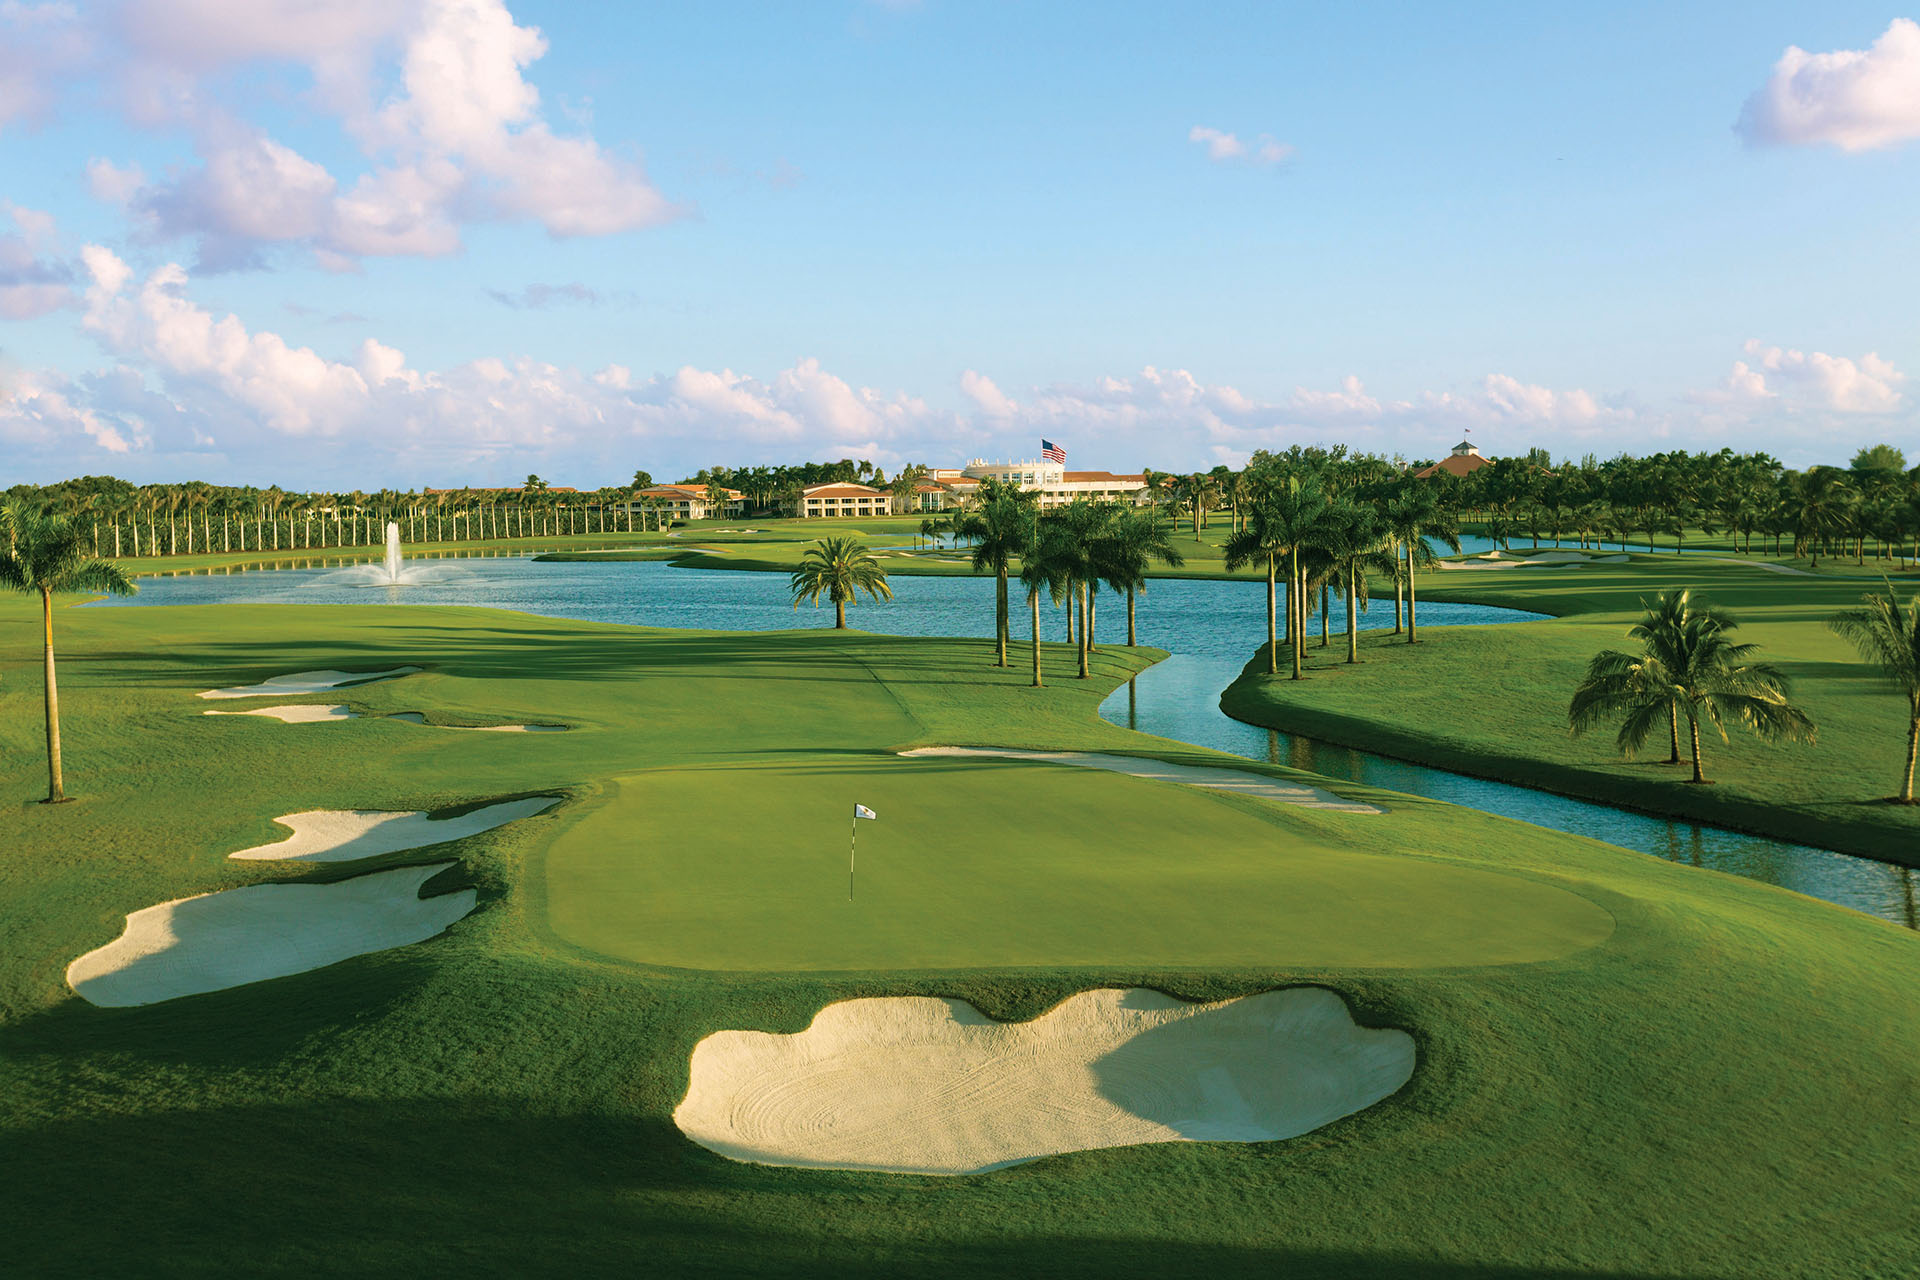 Stay & play at Trump National Doral